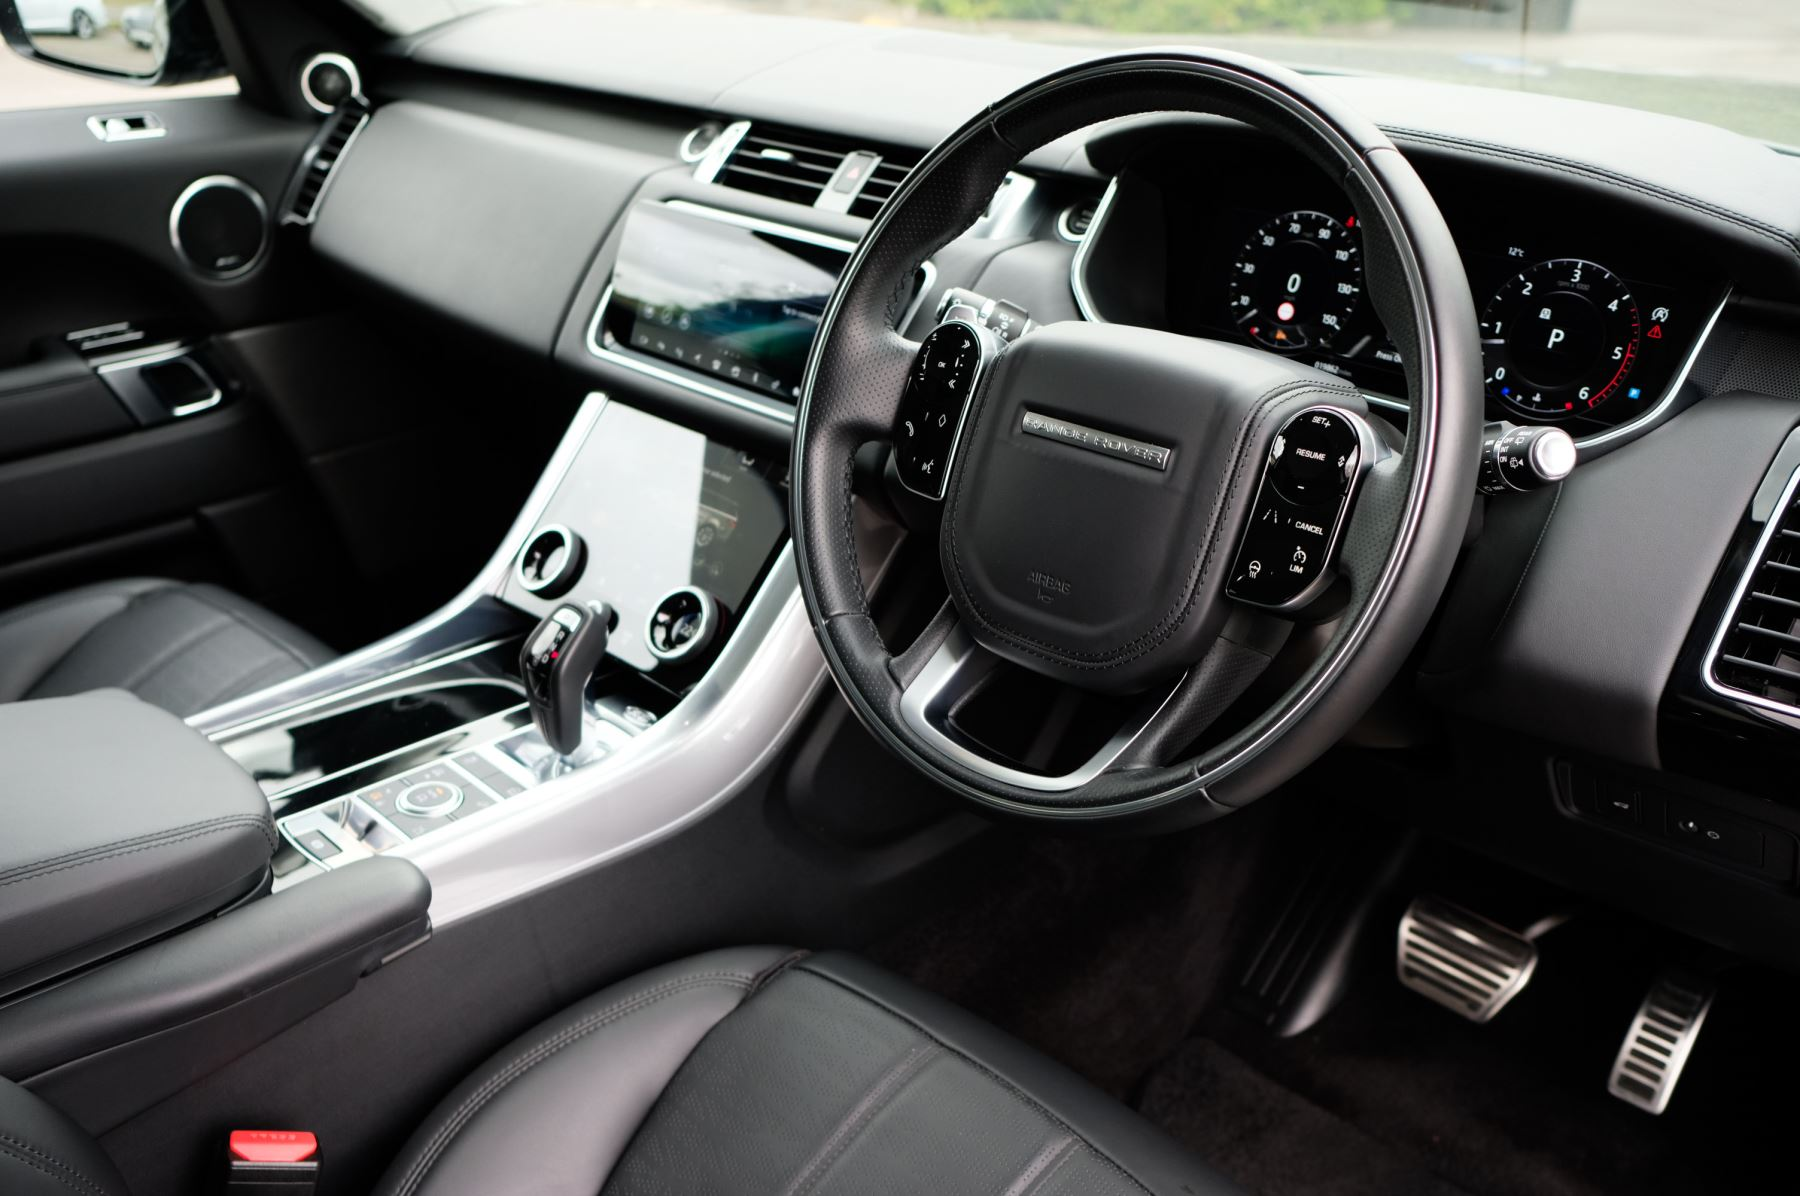 Land Rover Range Rover Sport 3.0 SDV6 Autobiography Dynamic 5dr [7 Seat] - Rear Seat Entertainment - 21 Inch Alloys image 11